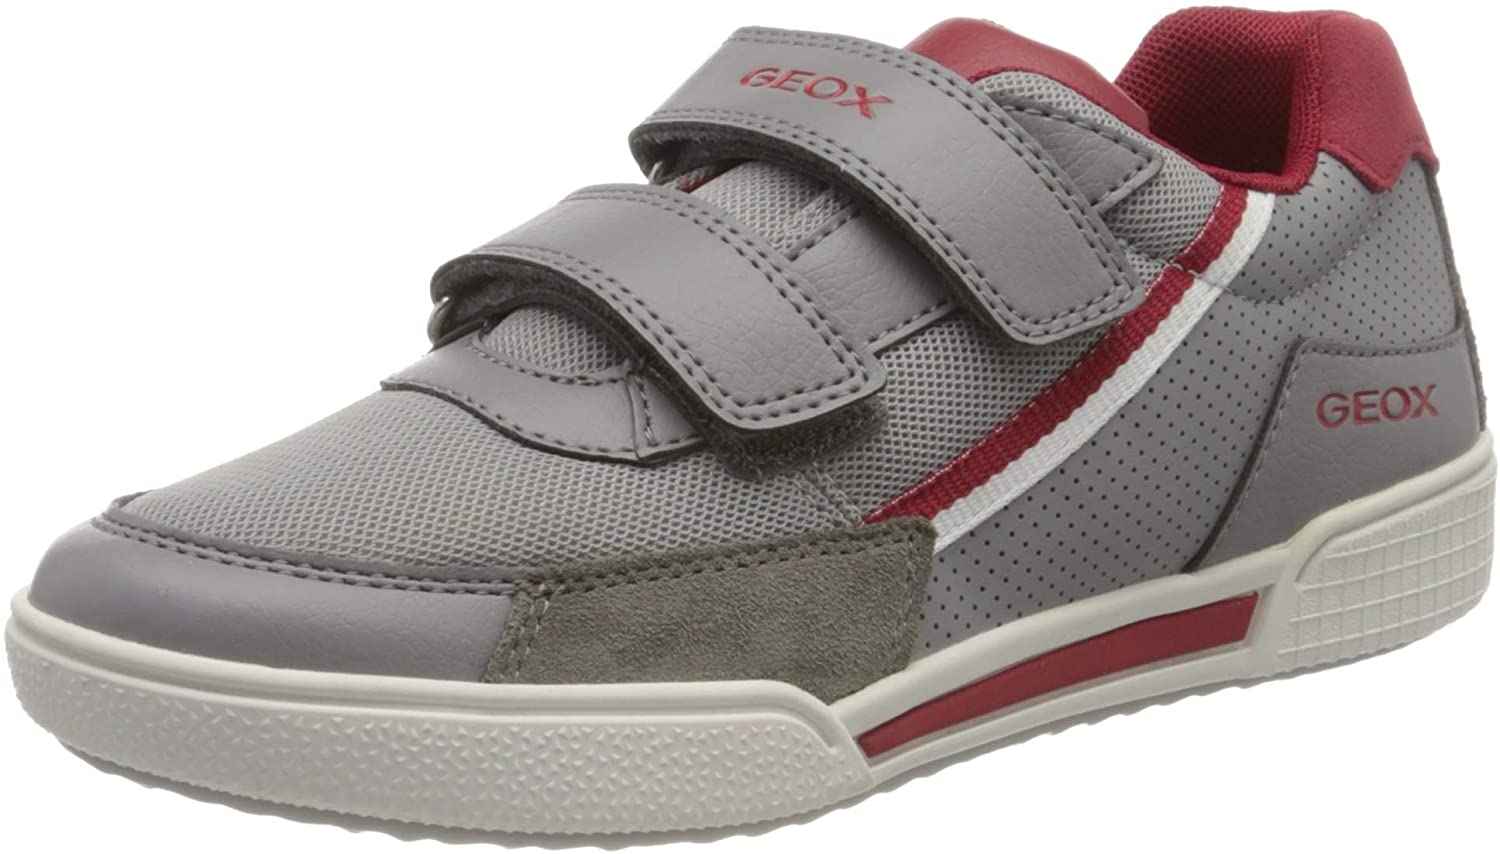 Geox J Poseido Boy Trainers Boys Grey/Red Low Top Trainers Shoes